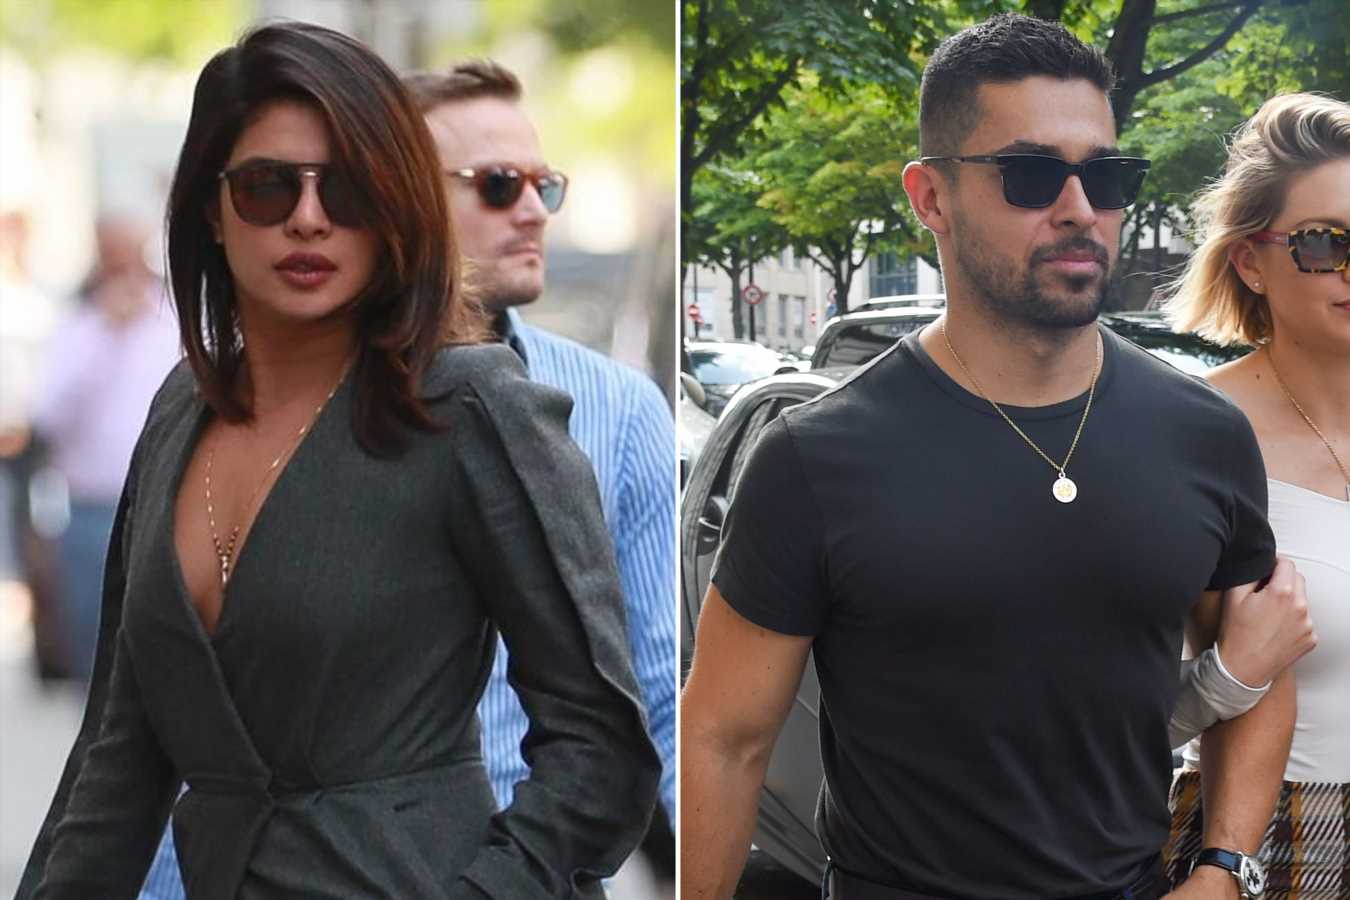 Wilmer Valderrama & Priyanka Chopra Join Joe Jonas & Sophie Turner in Paris Ahead of Their Second Wedding